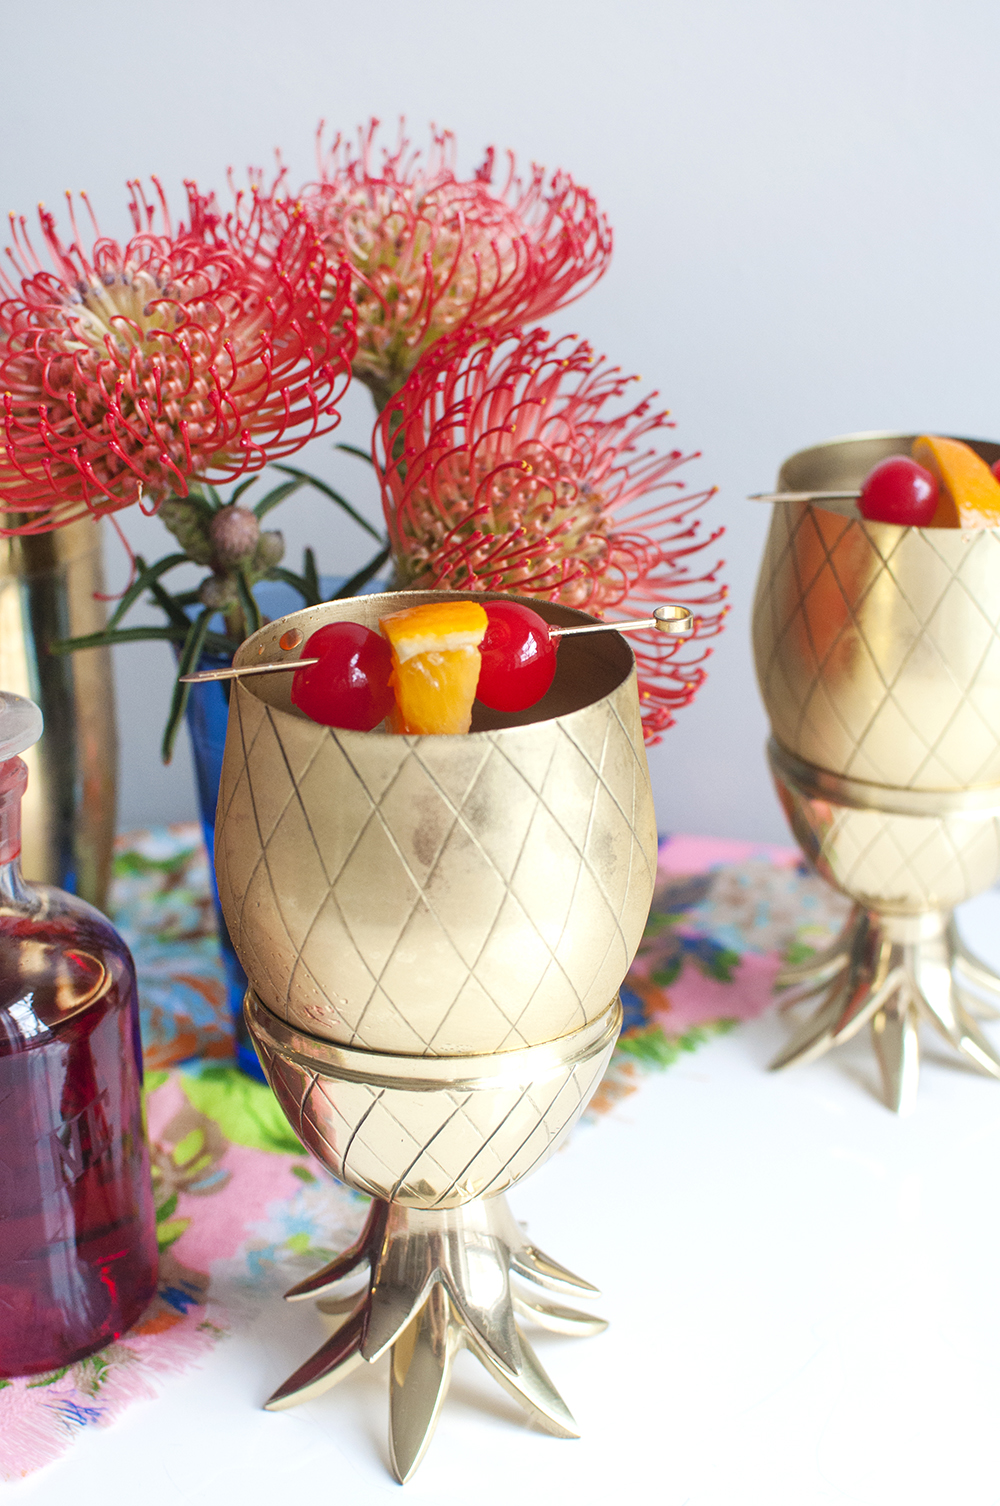 Tiki Drinks and the Pinapple Tumbler